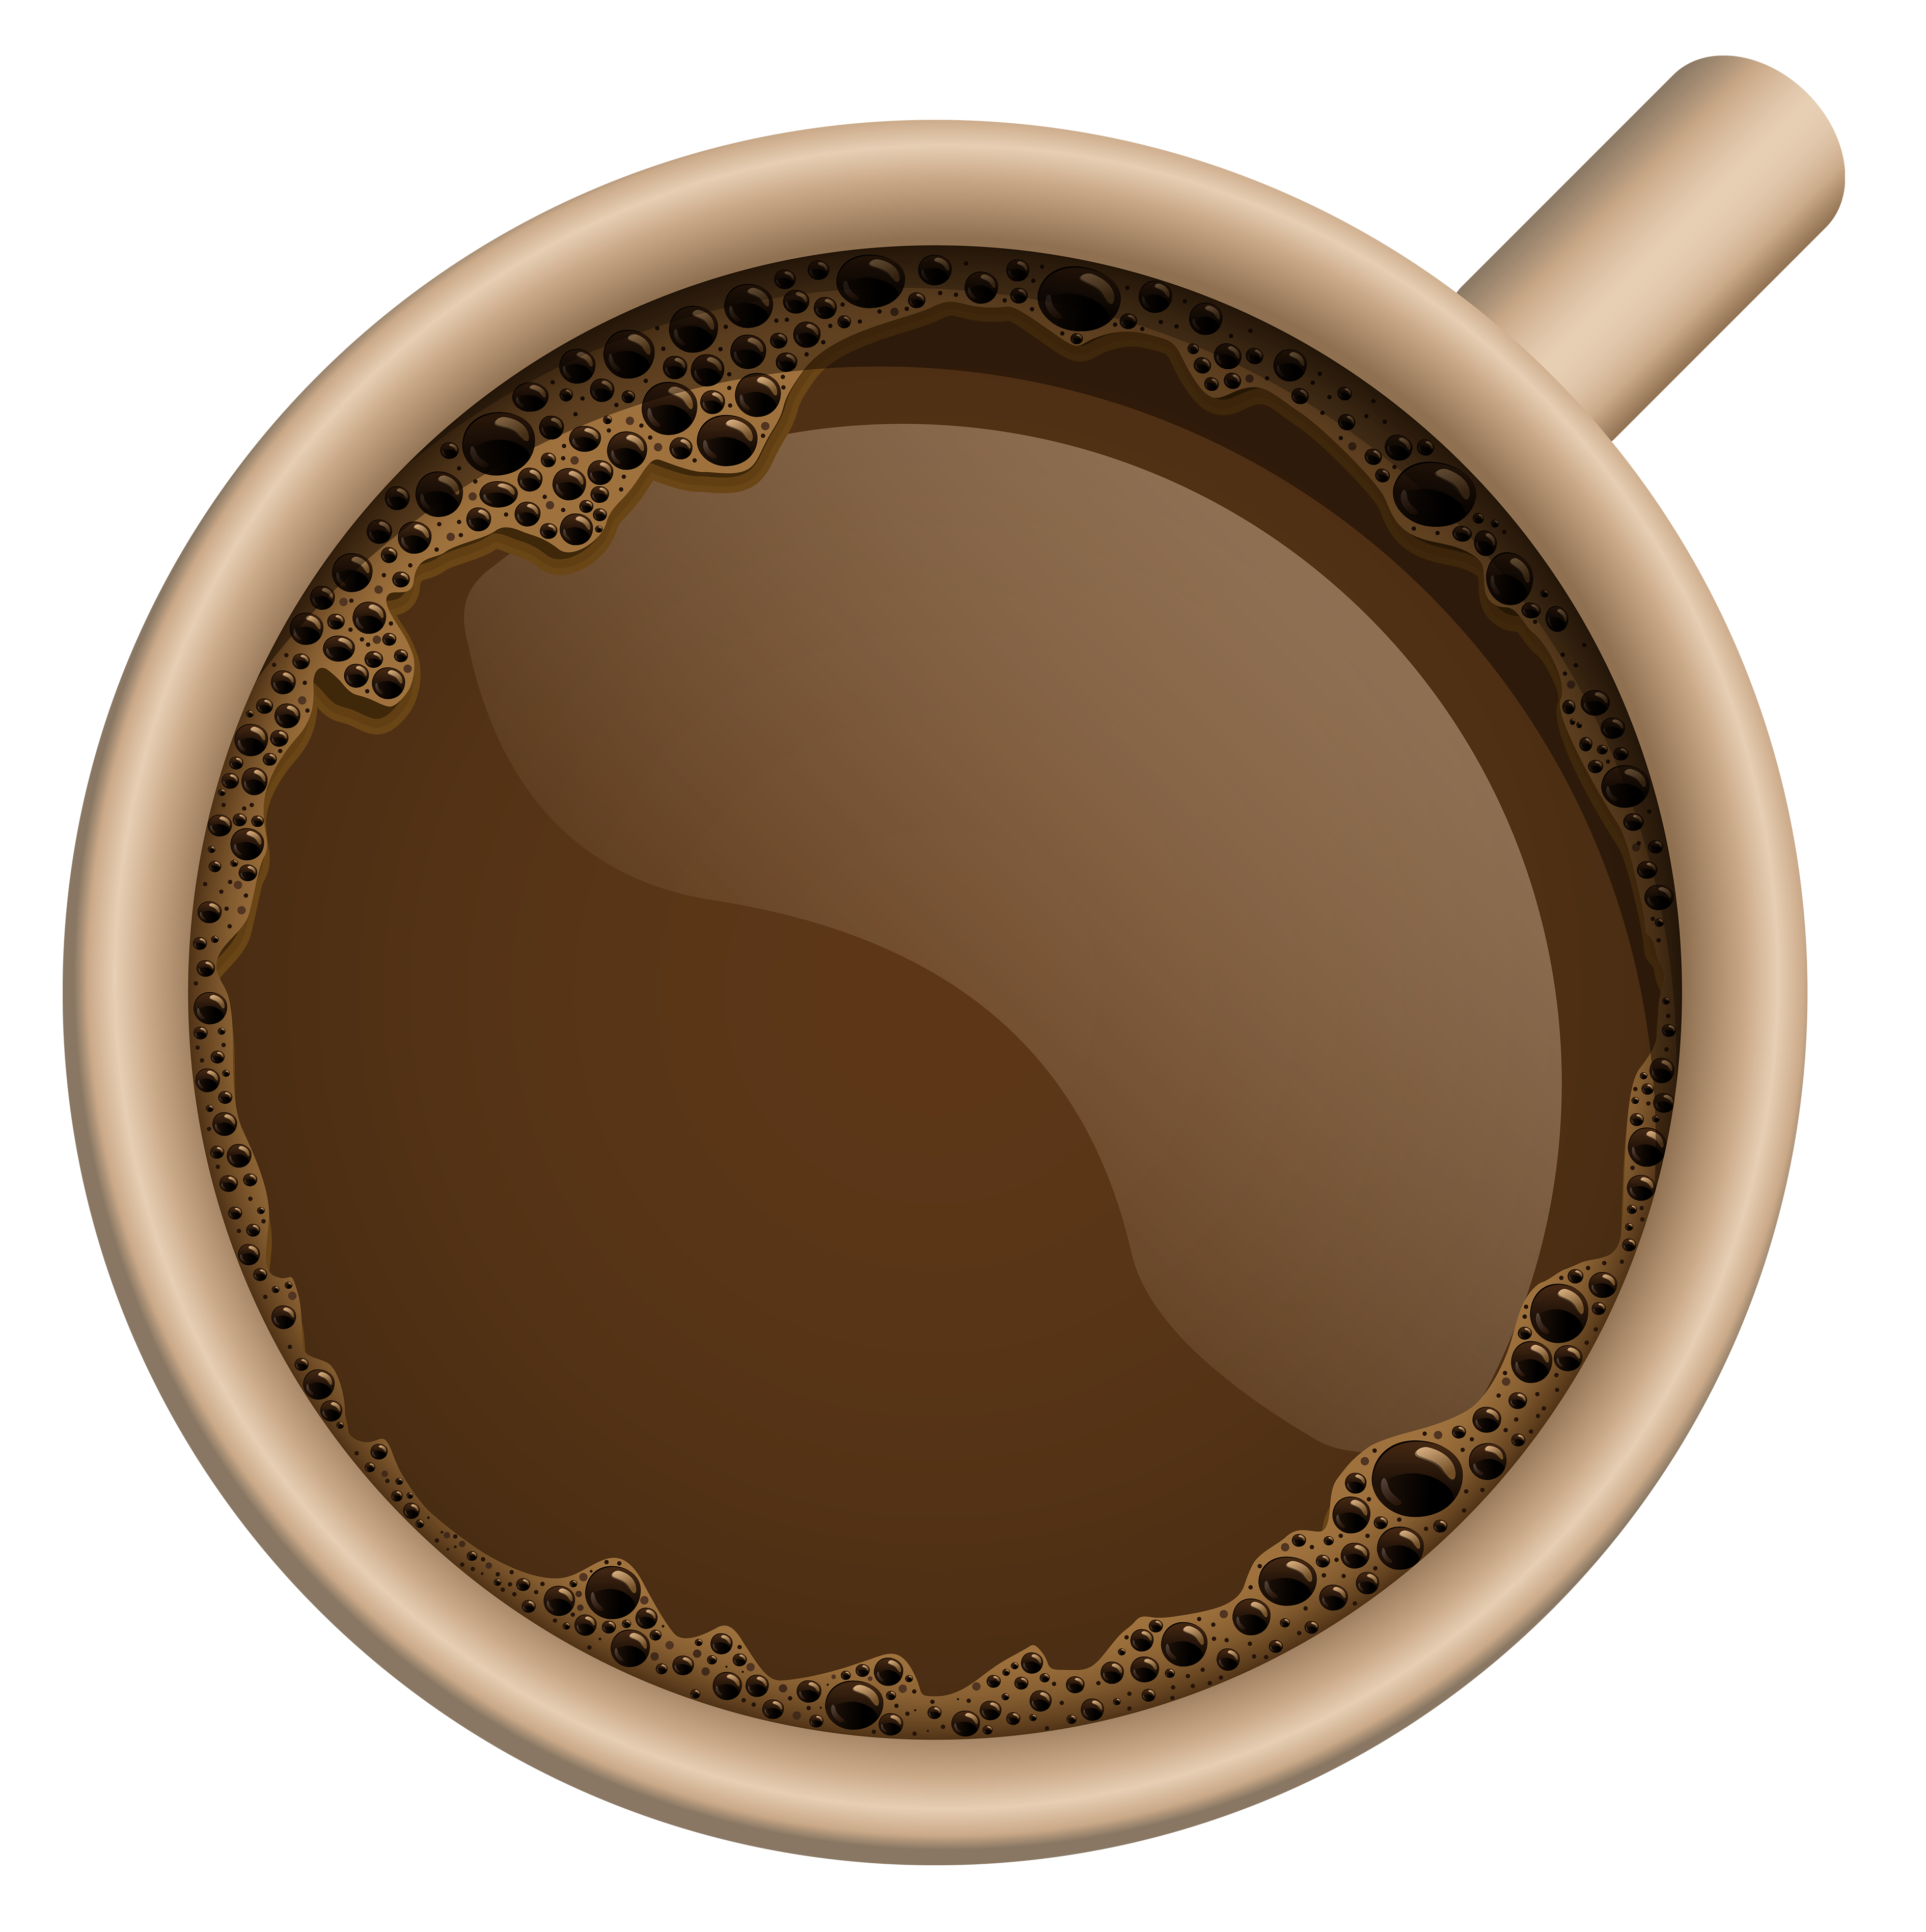 Coffee cup top view png. Brown clipart image gallery